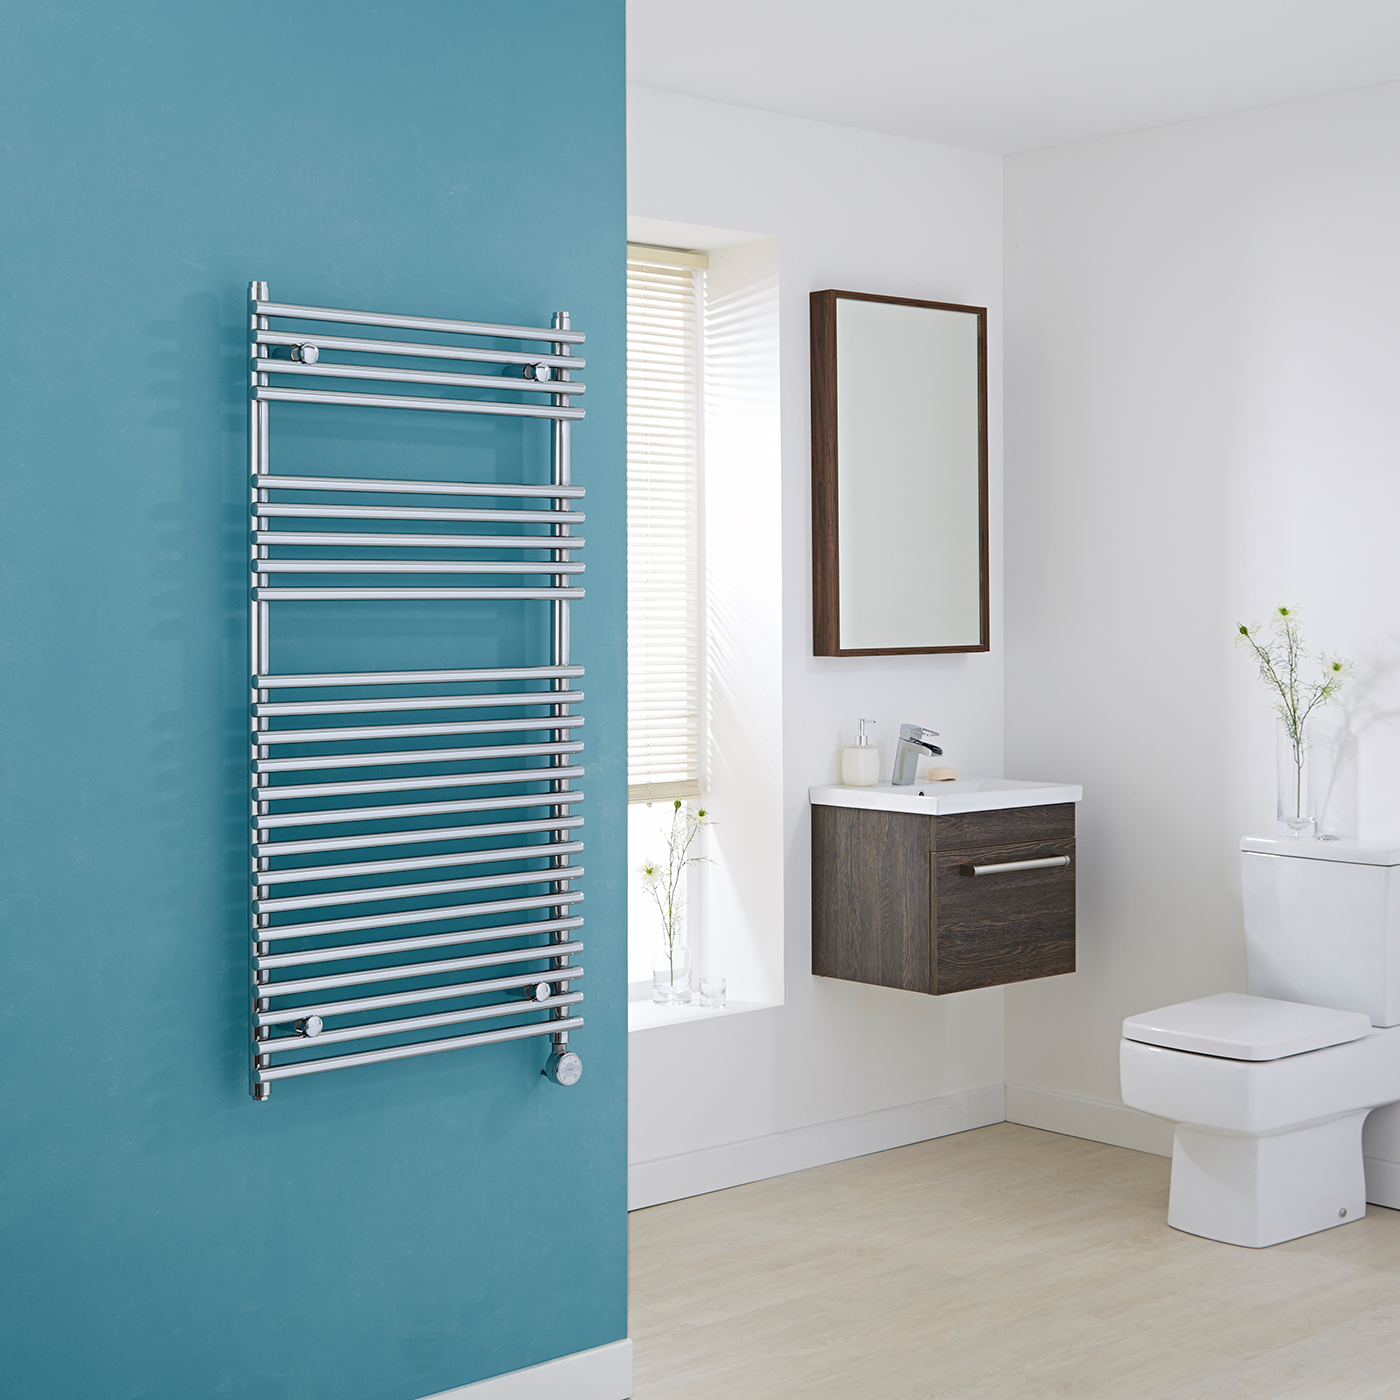 Kudox Electric - Chrome Flat Bar on Bar Heated Towel Rail - 1150mm x 600mm